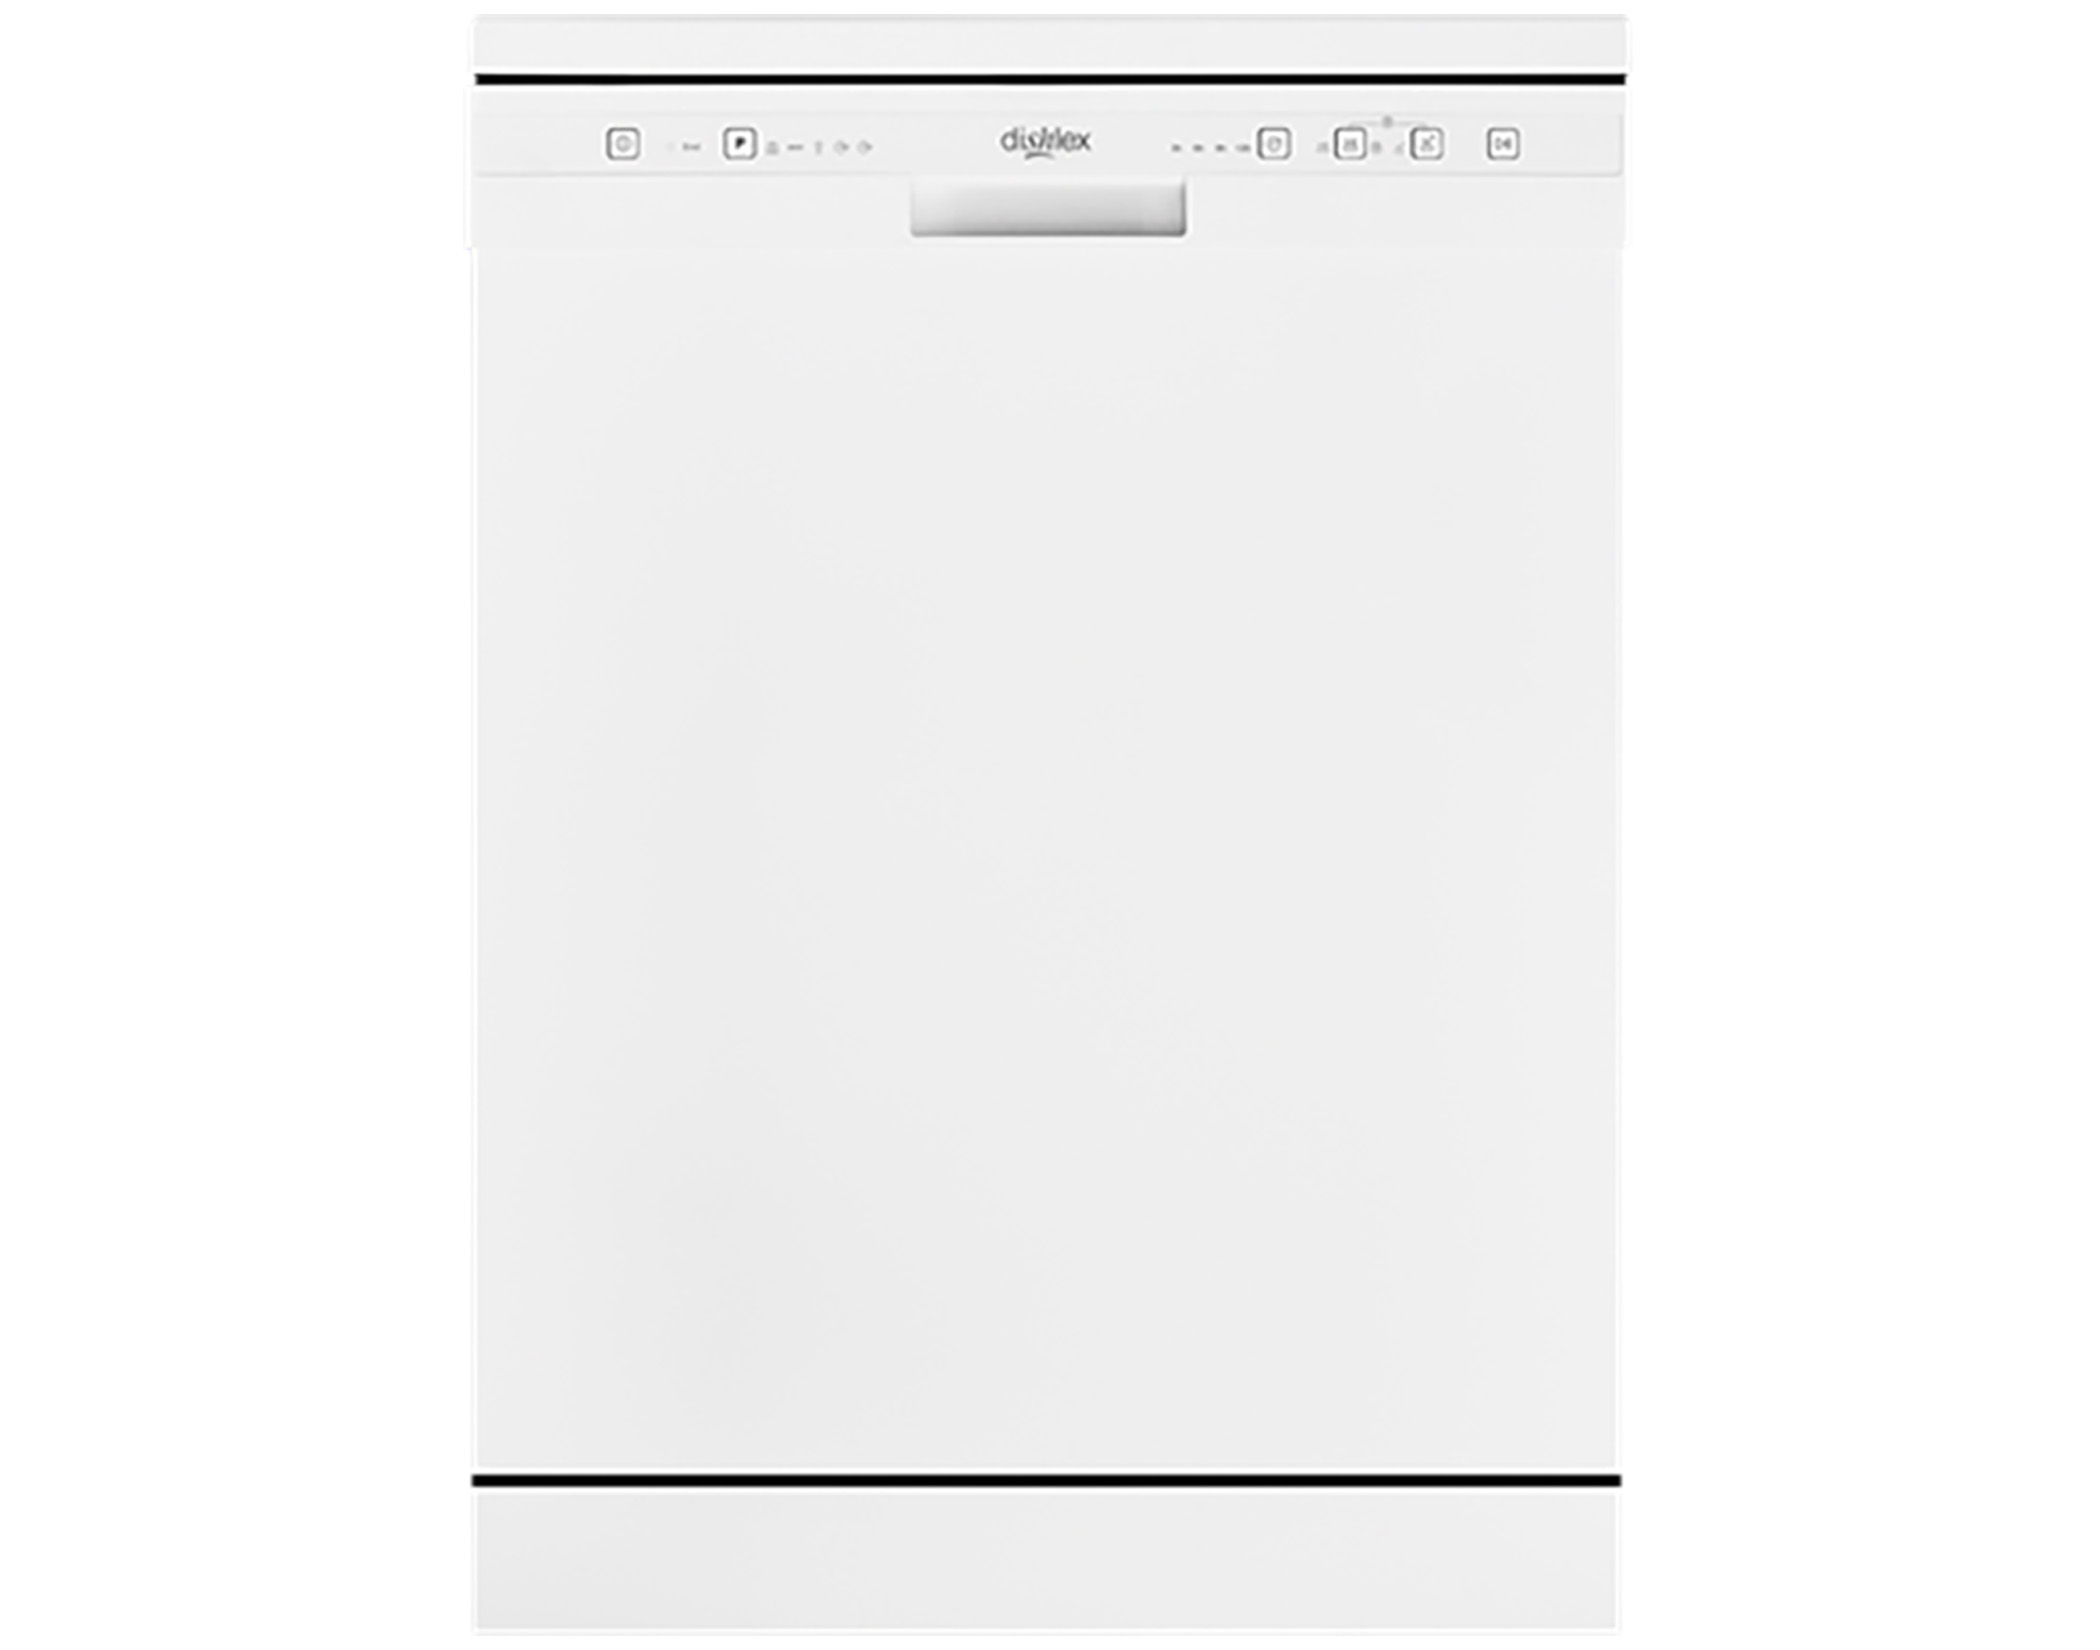 Dishlex DSF6104WA 13 Place Setting Freestanding Dishwasher in White Main